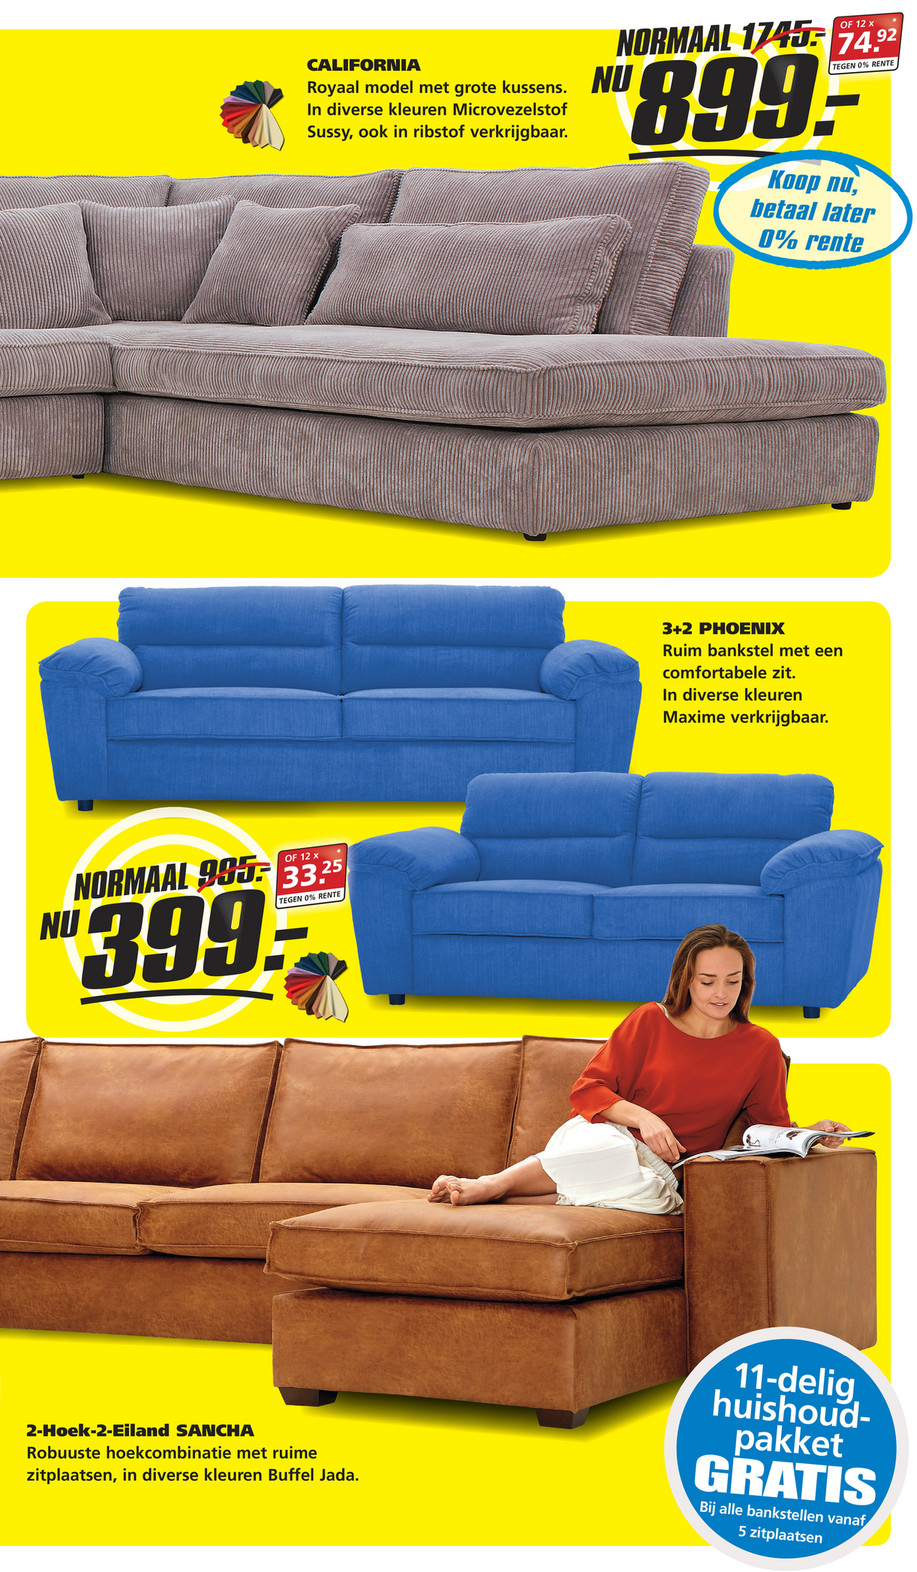 Seats And Sofas Bankstellen.Reclamefolder Nl Seats And Sofas Week22 17 Pagina 6 7